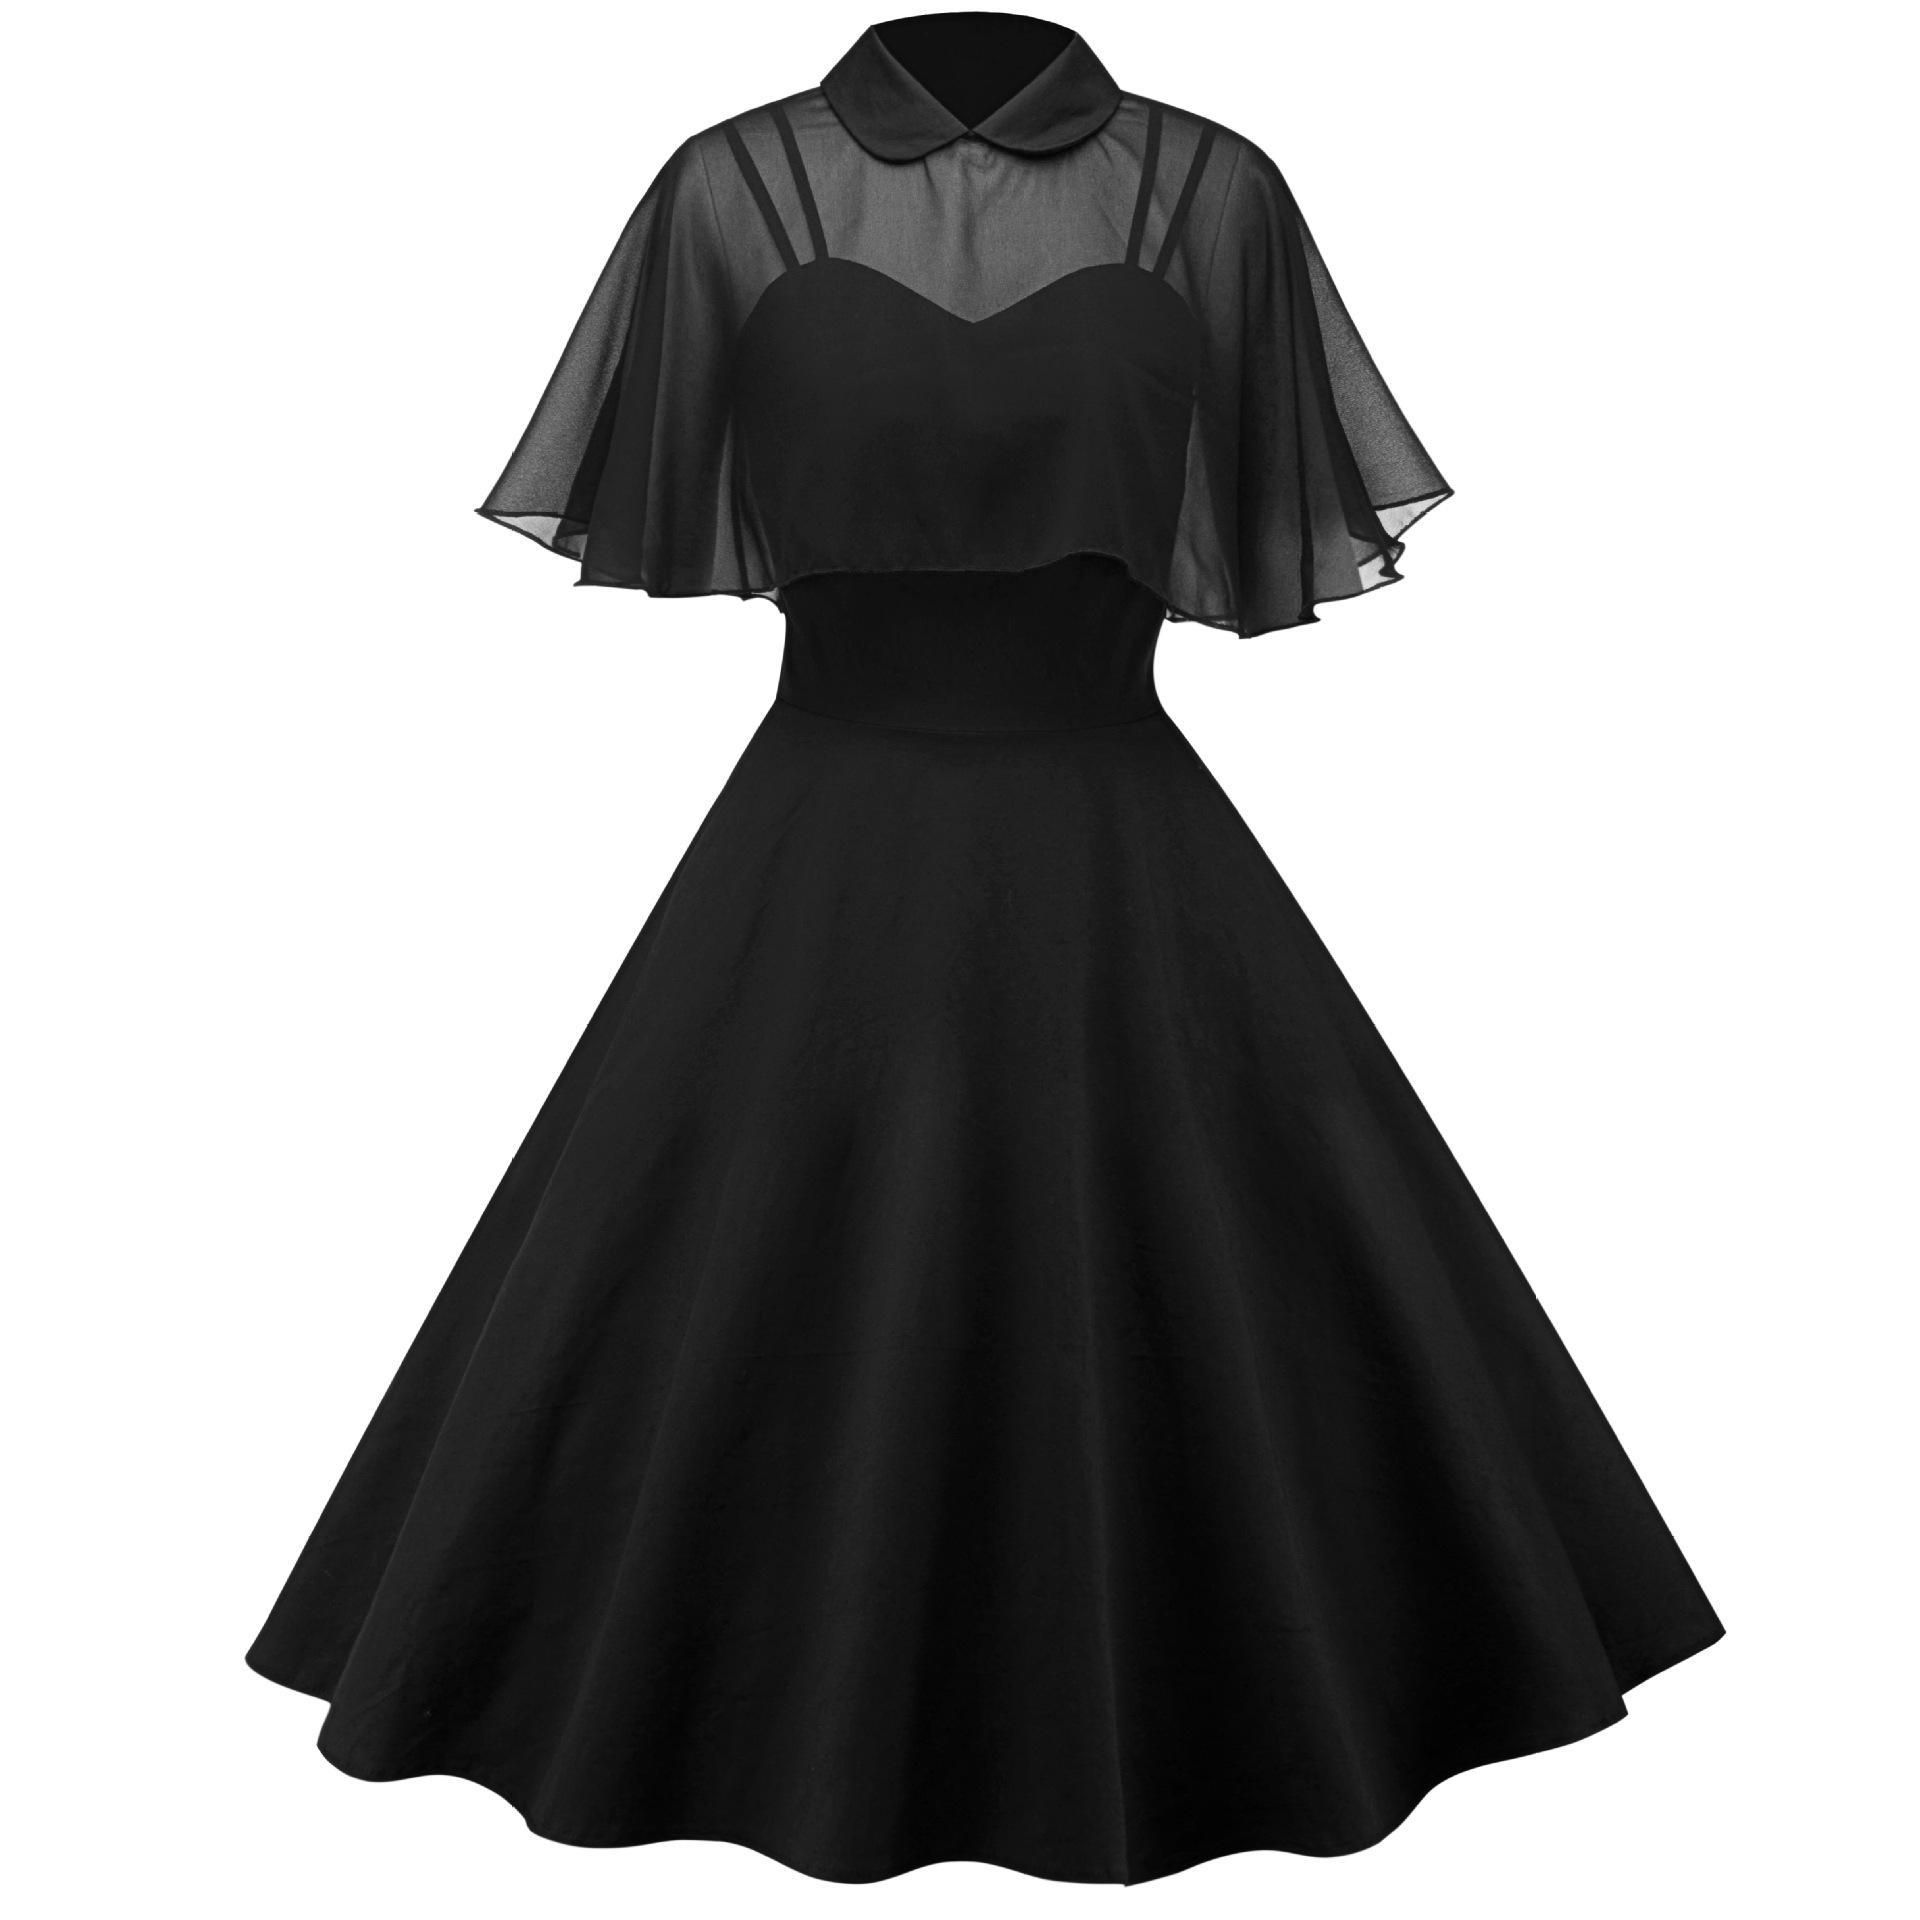 4 Colors Elegant Party Cape Dress SP13238 #vintage